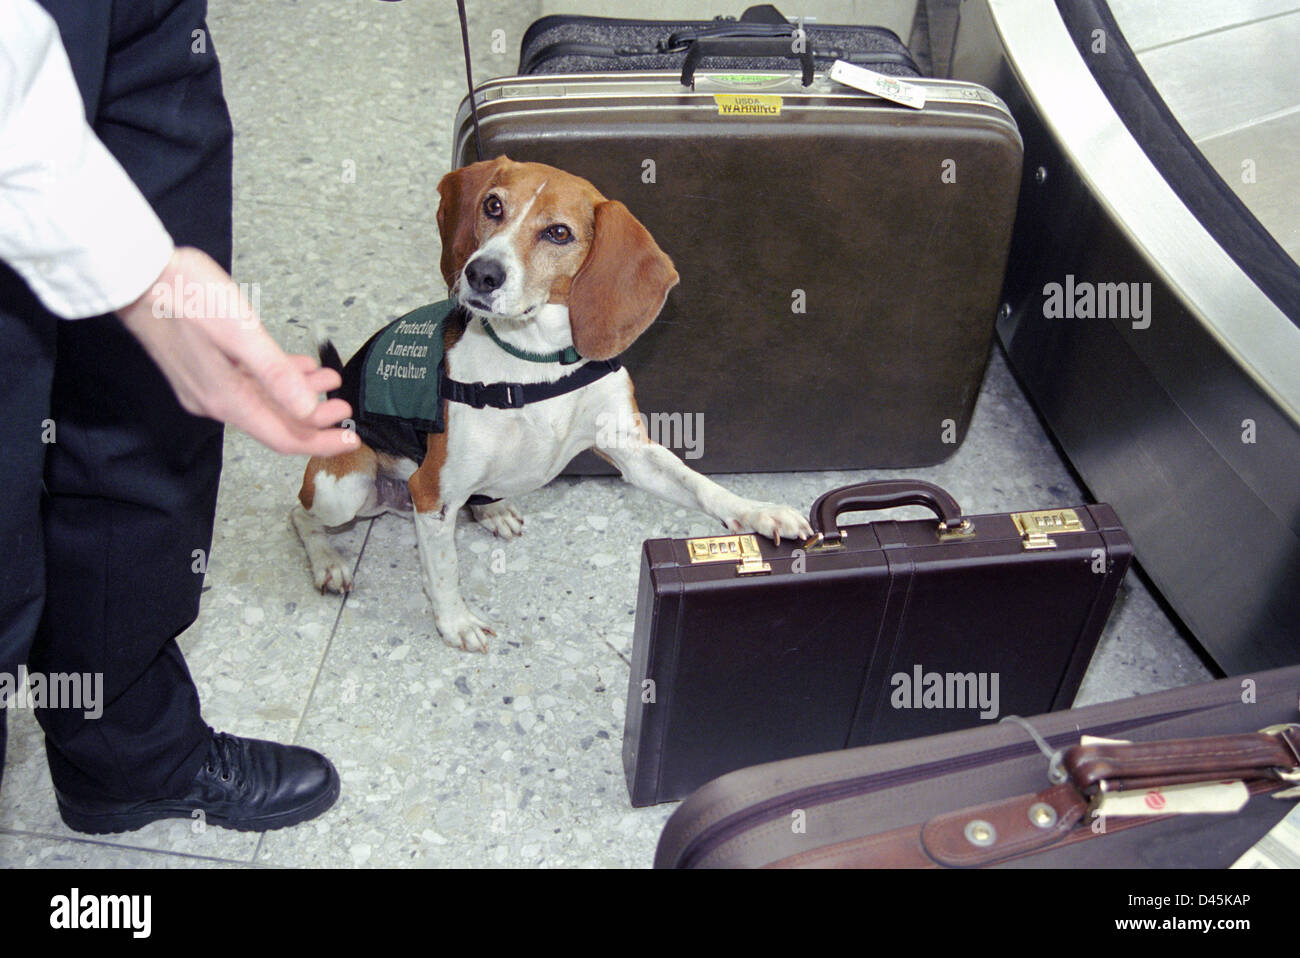 USDA sniffer beagle dog signals that a piece of luggage contains contraband at Washington Dulles International Airport - Stock Image